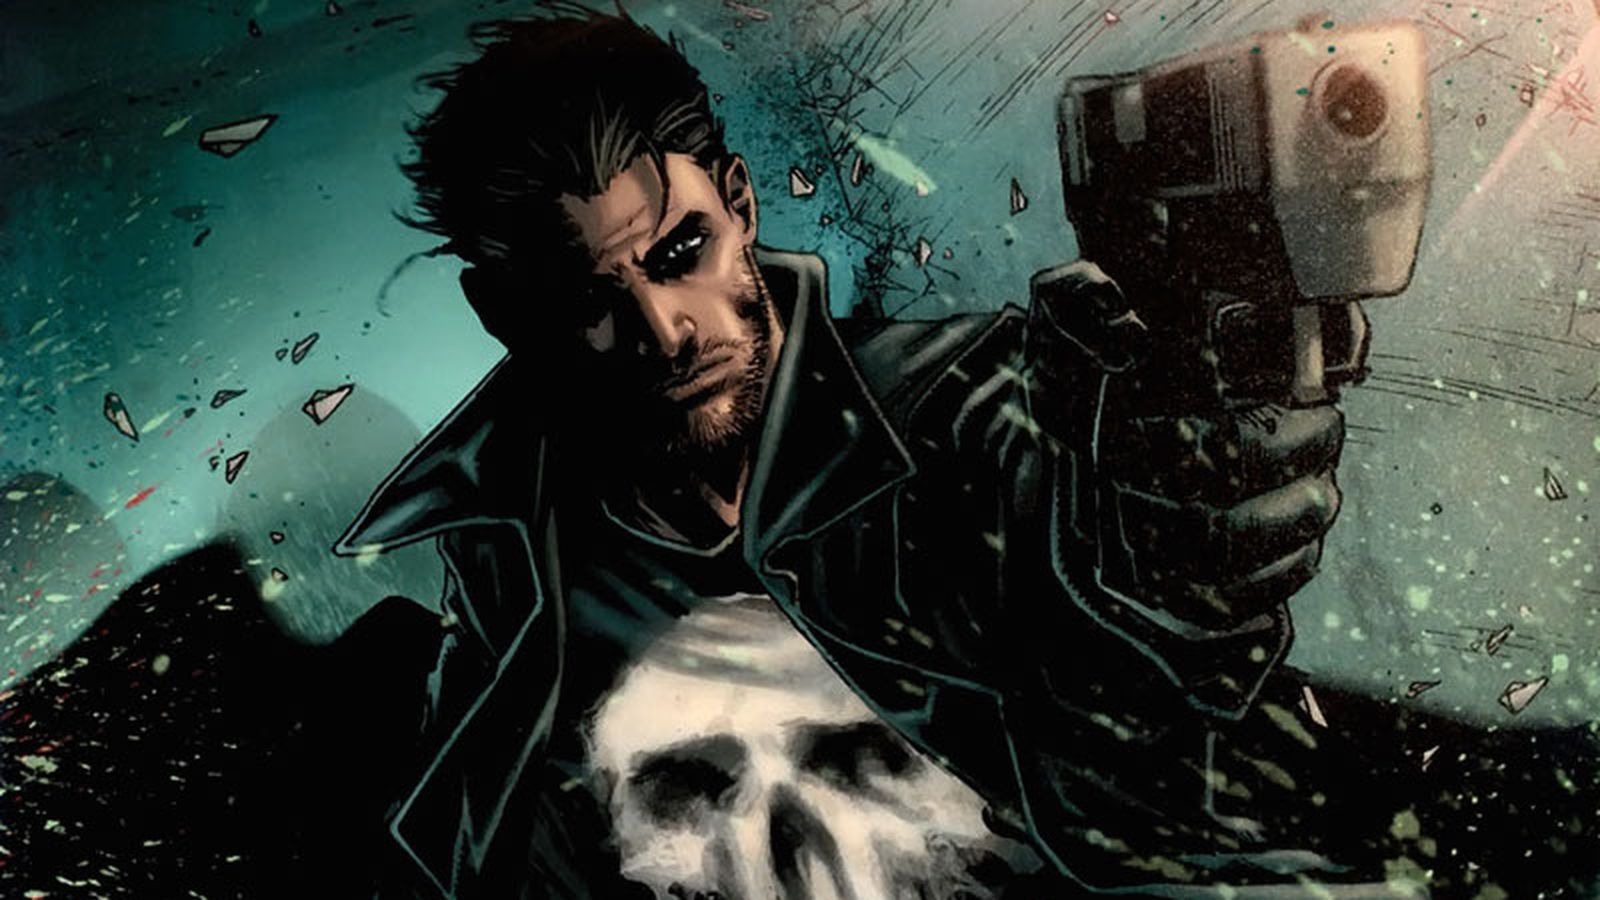 The Punisher's new trailer shows off the most violent, graphic Marvel show yet